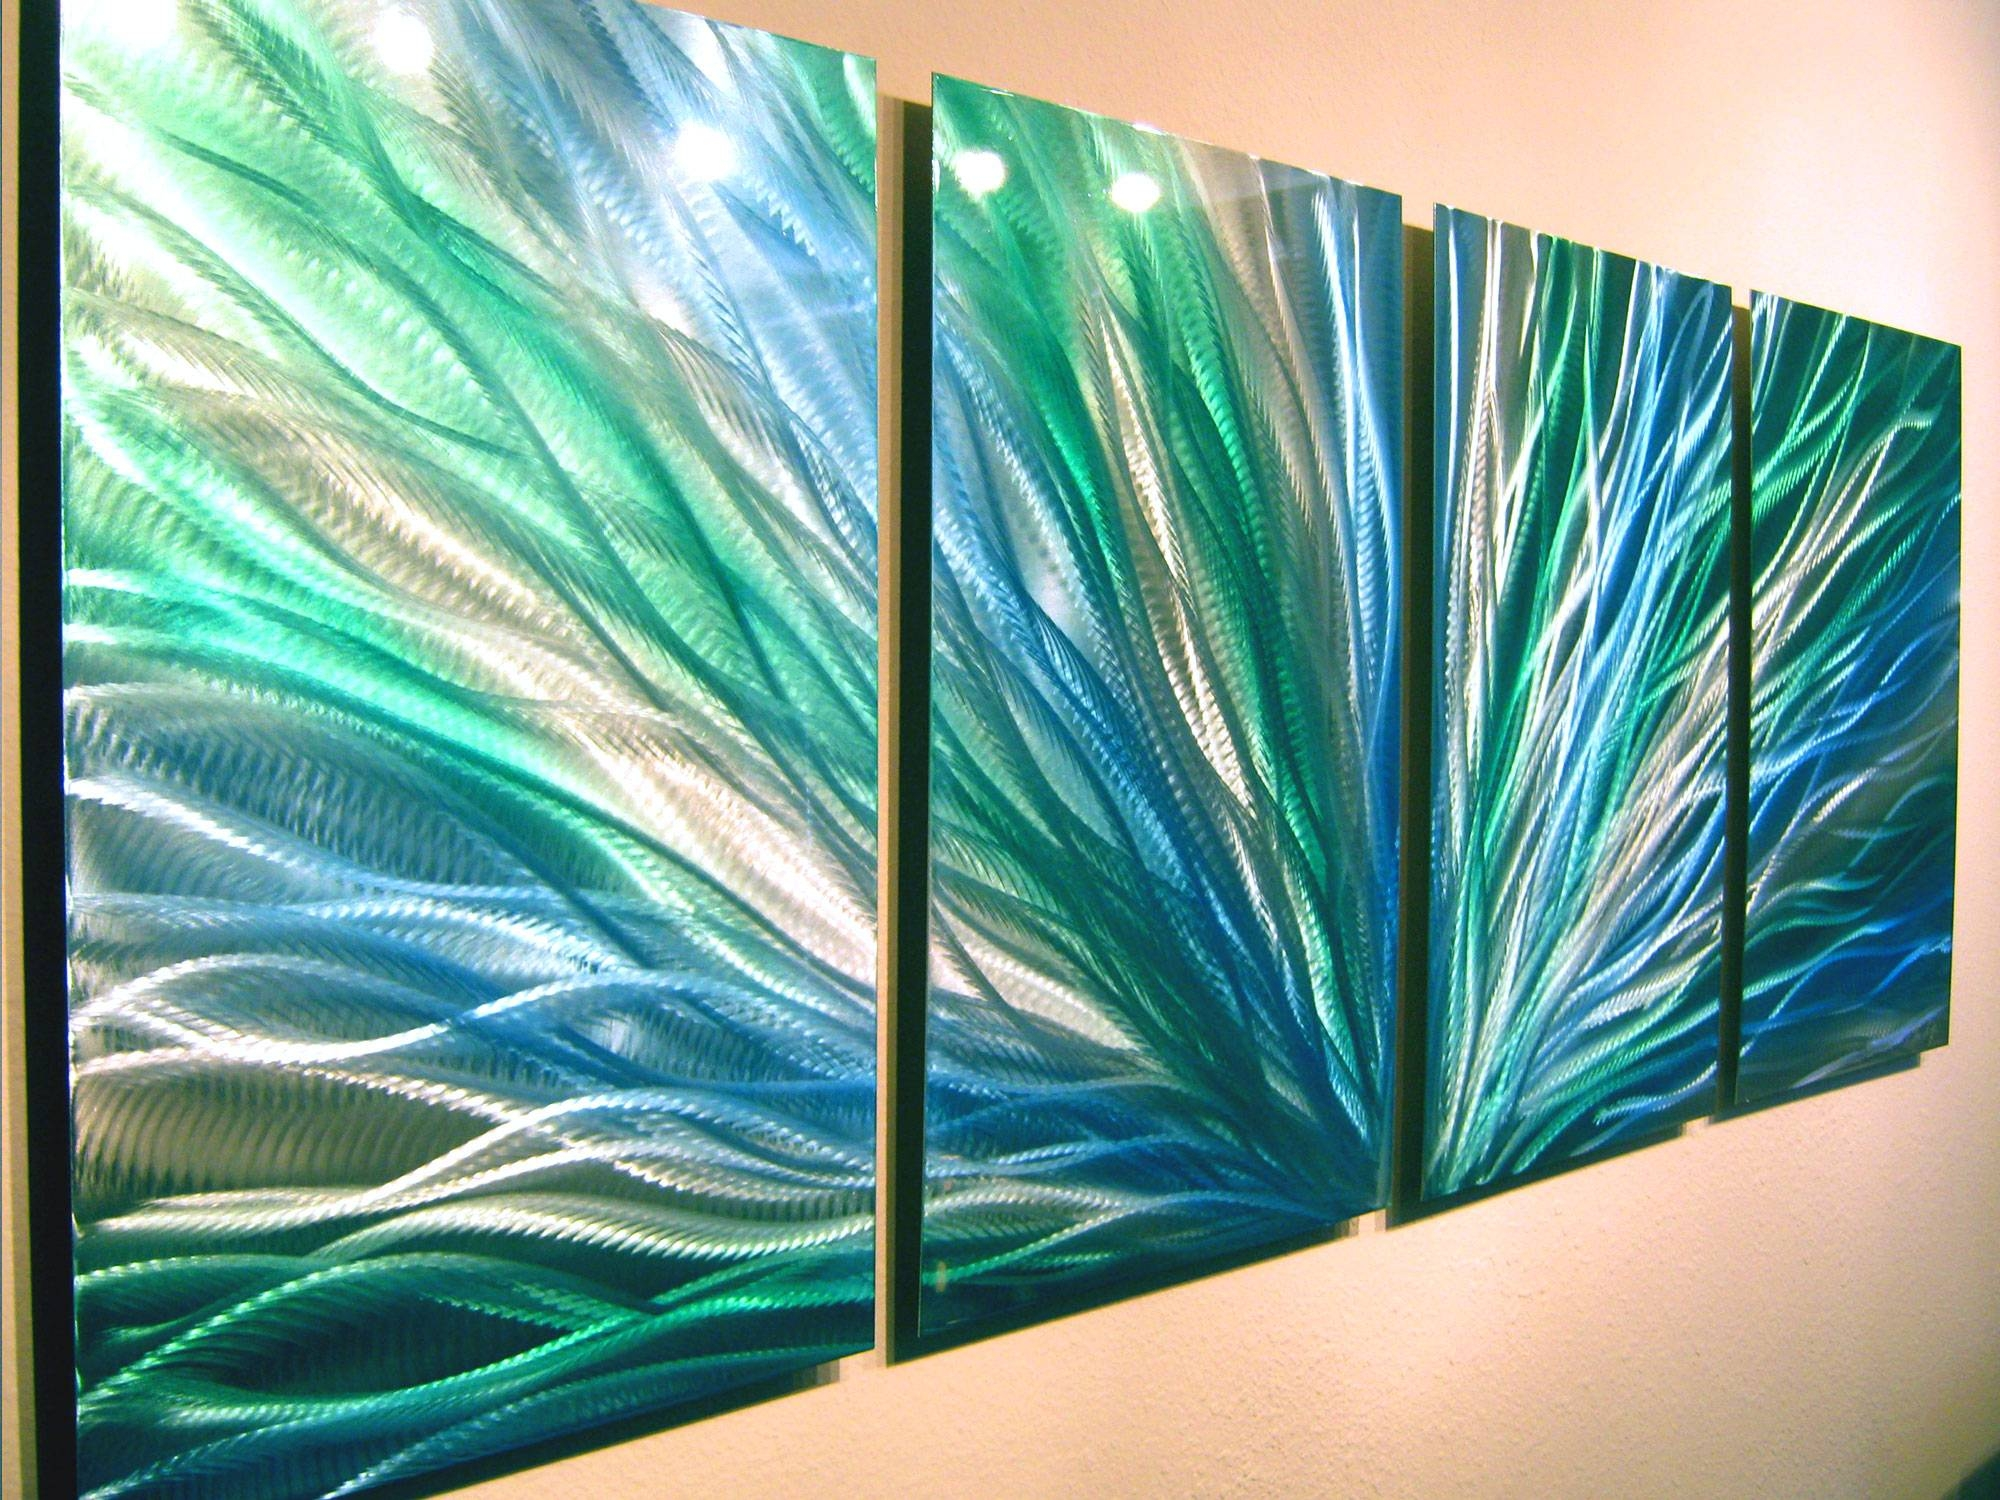 Home · Inspiring Art Gallery · Online Store Poweredstorenvy With Regard To 2017 Blue And Green Wall Art (View 8 of 20)